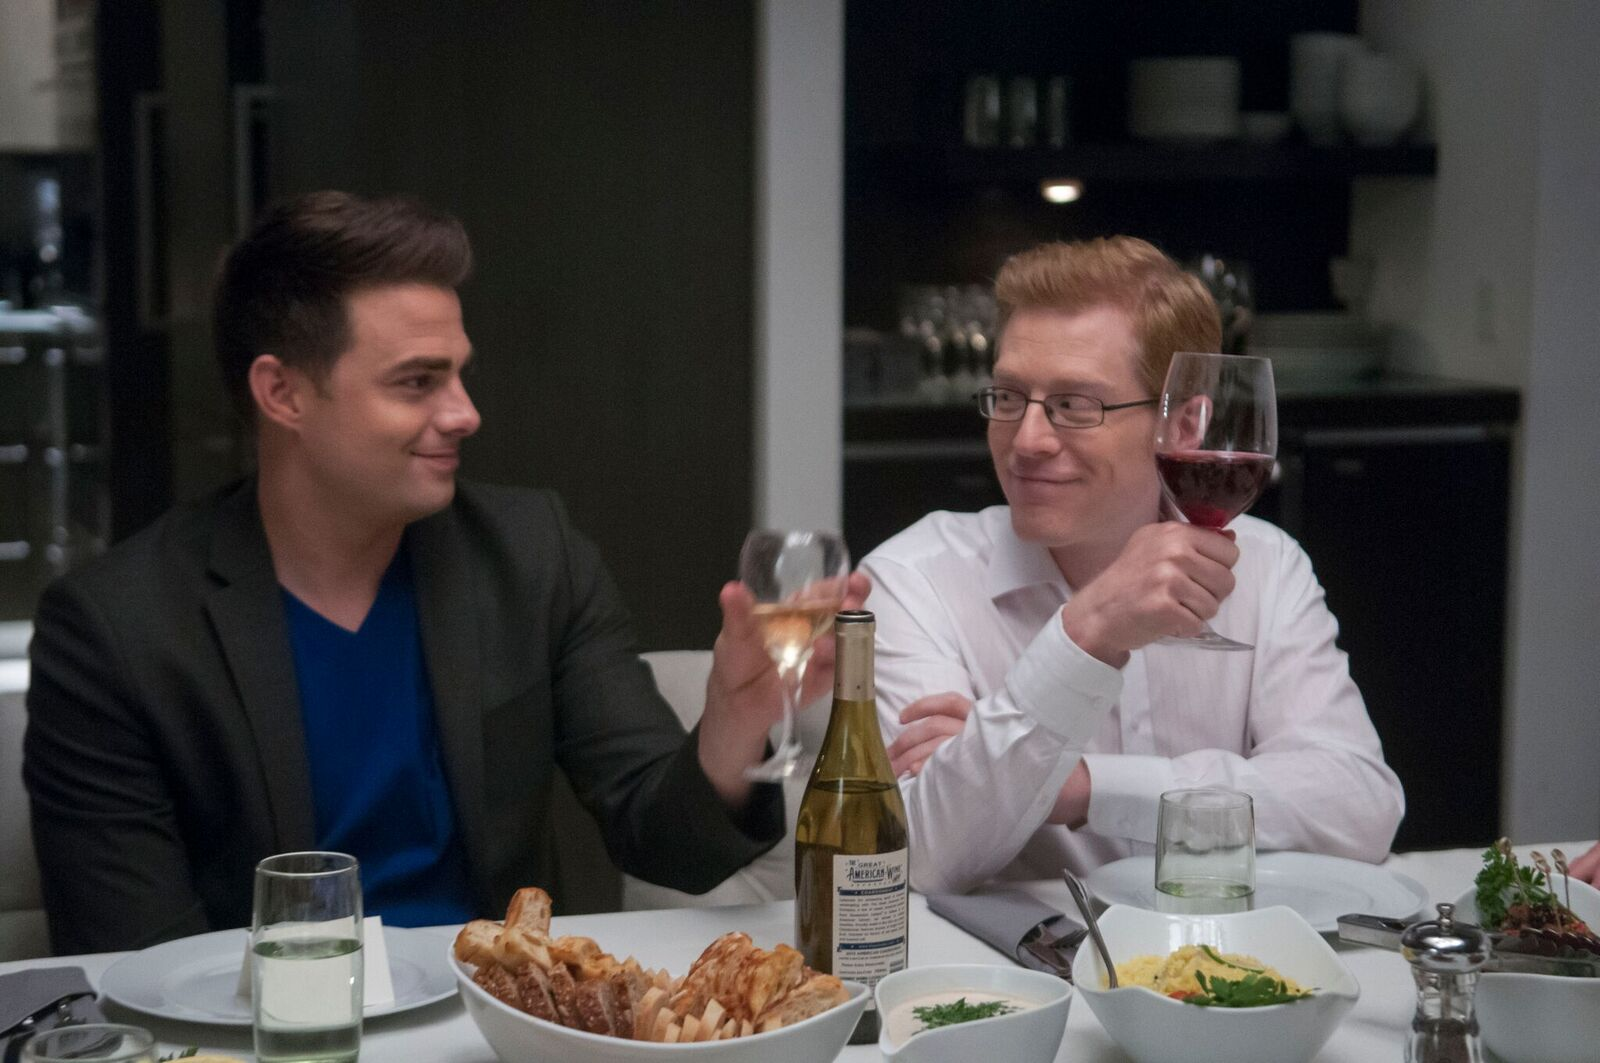 BWW Interview: Anthony Rapp On His Role in the New Film, DO YOU TAKE THIS MAN and the Importance of the Commitment of Marriage